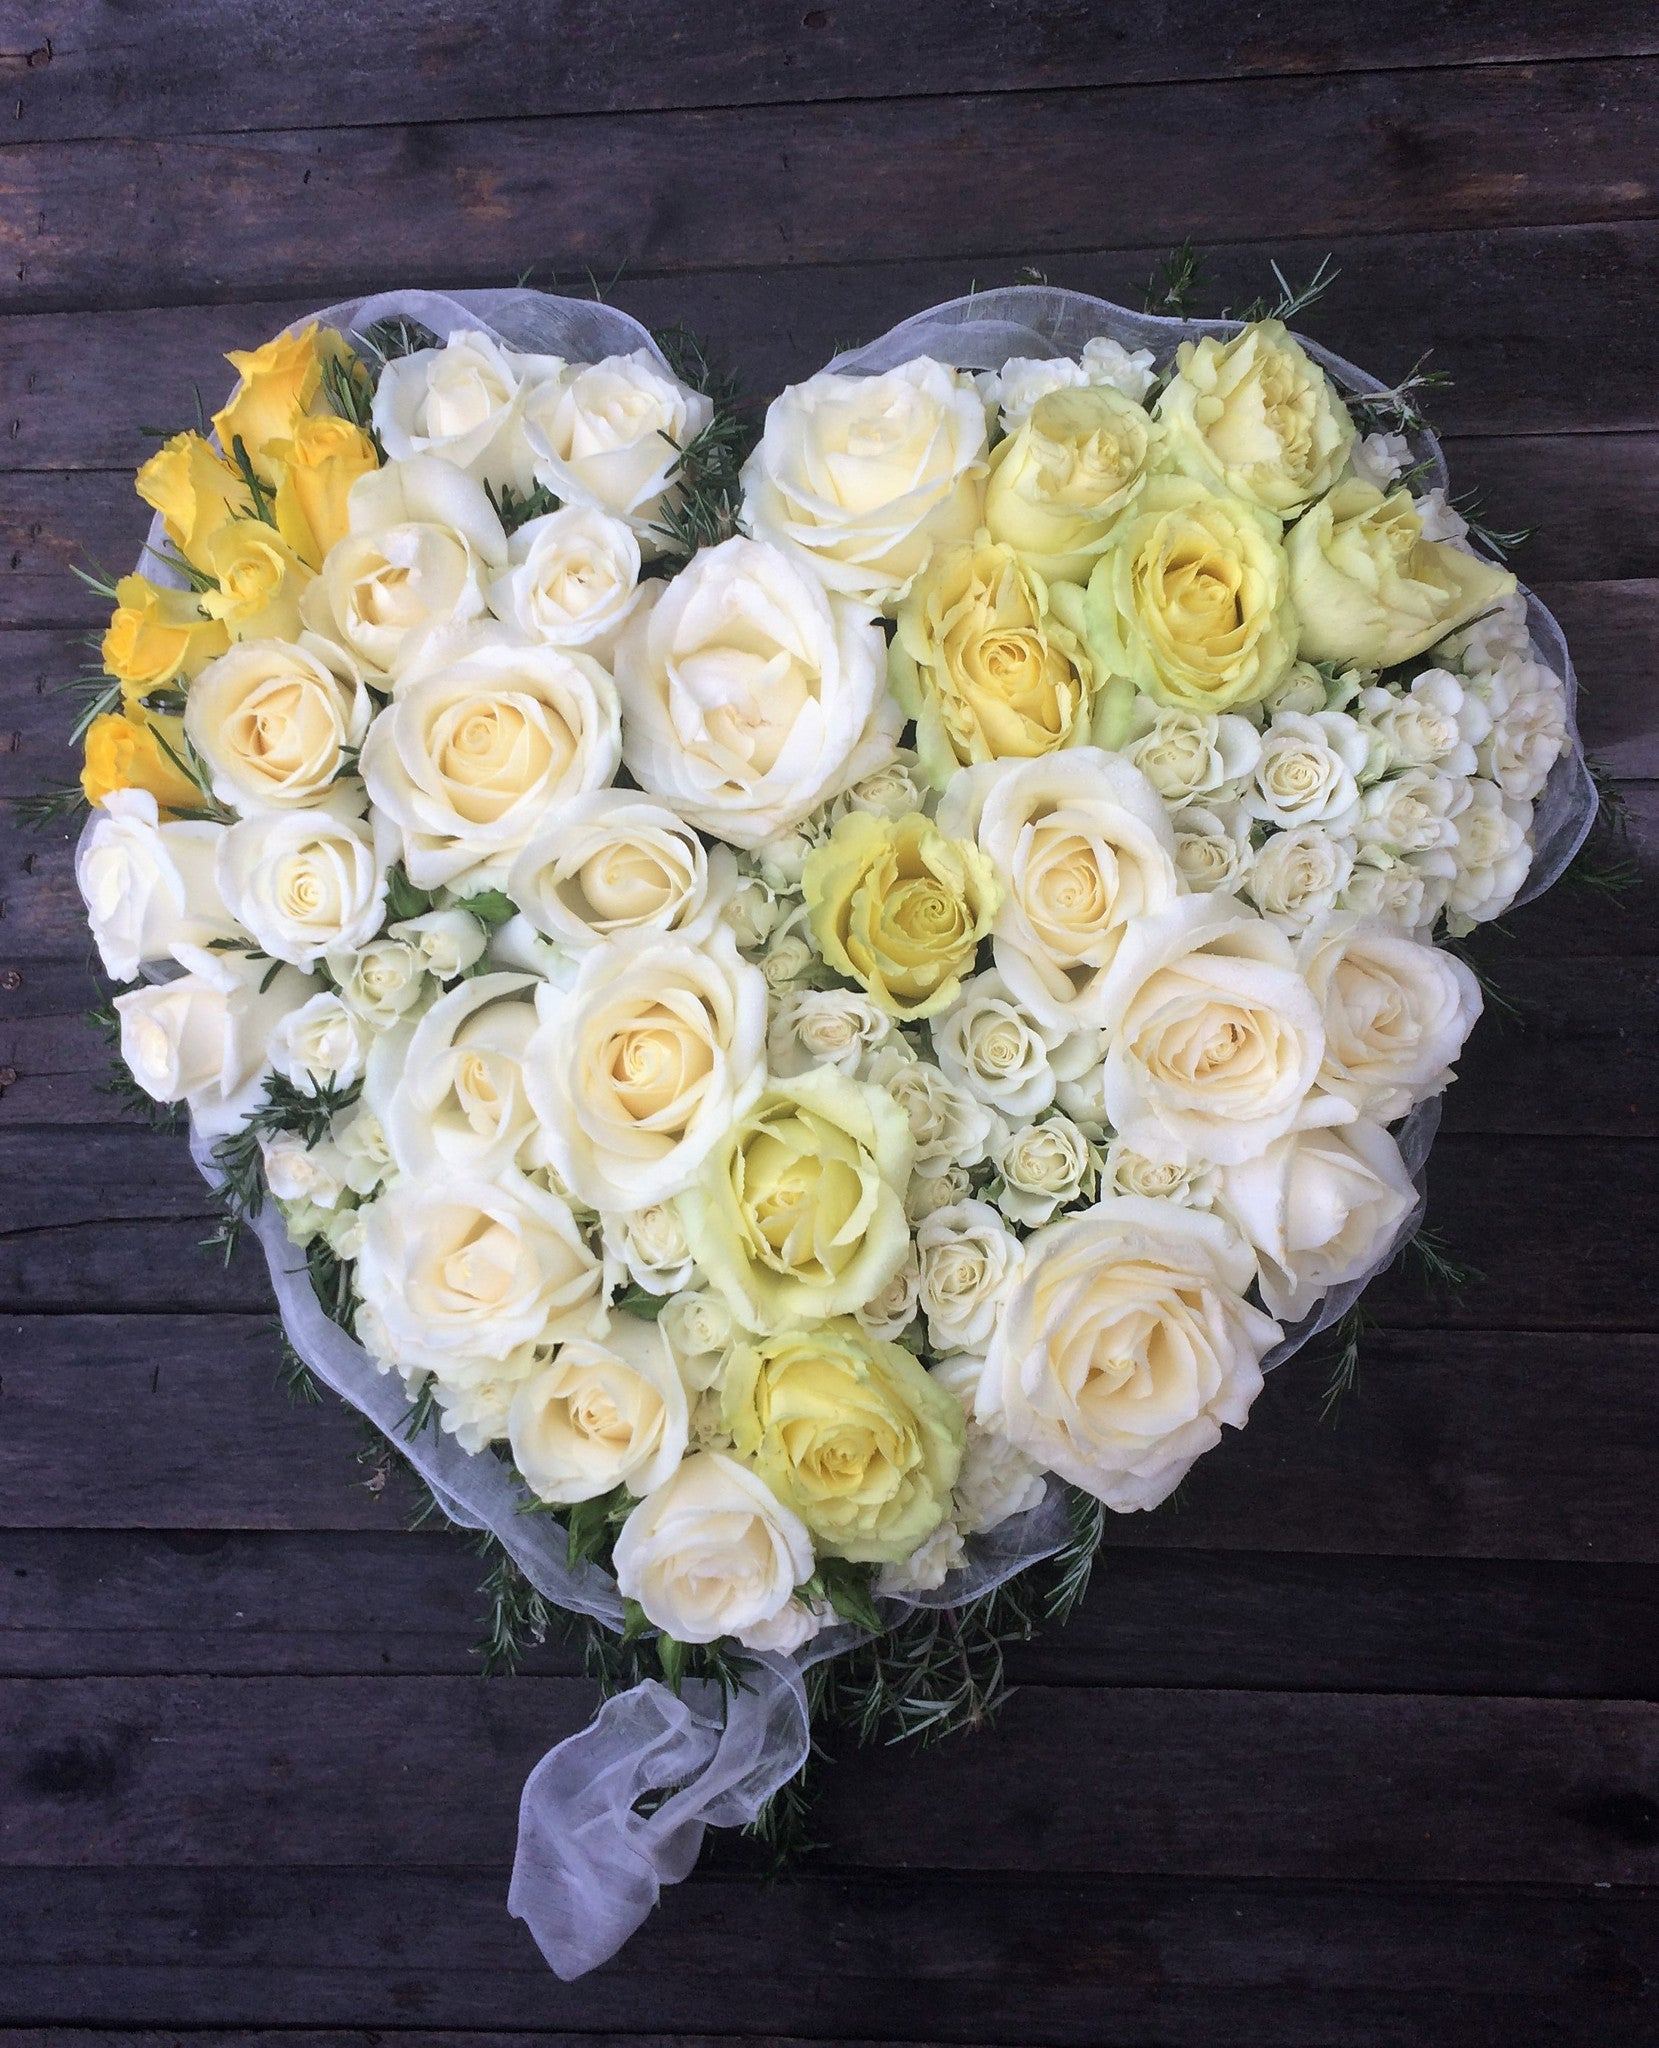 Natural style funeral heart in whites, creams and yellows with Roses.